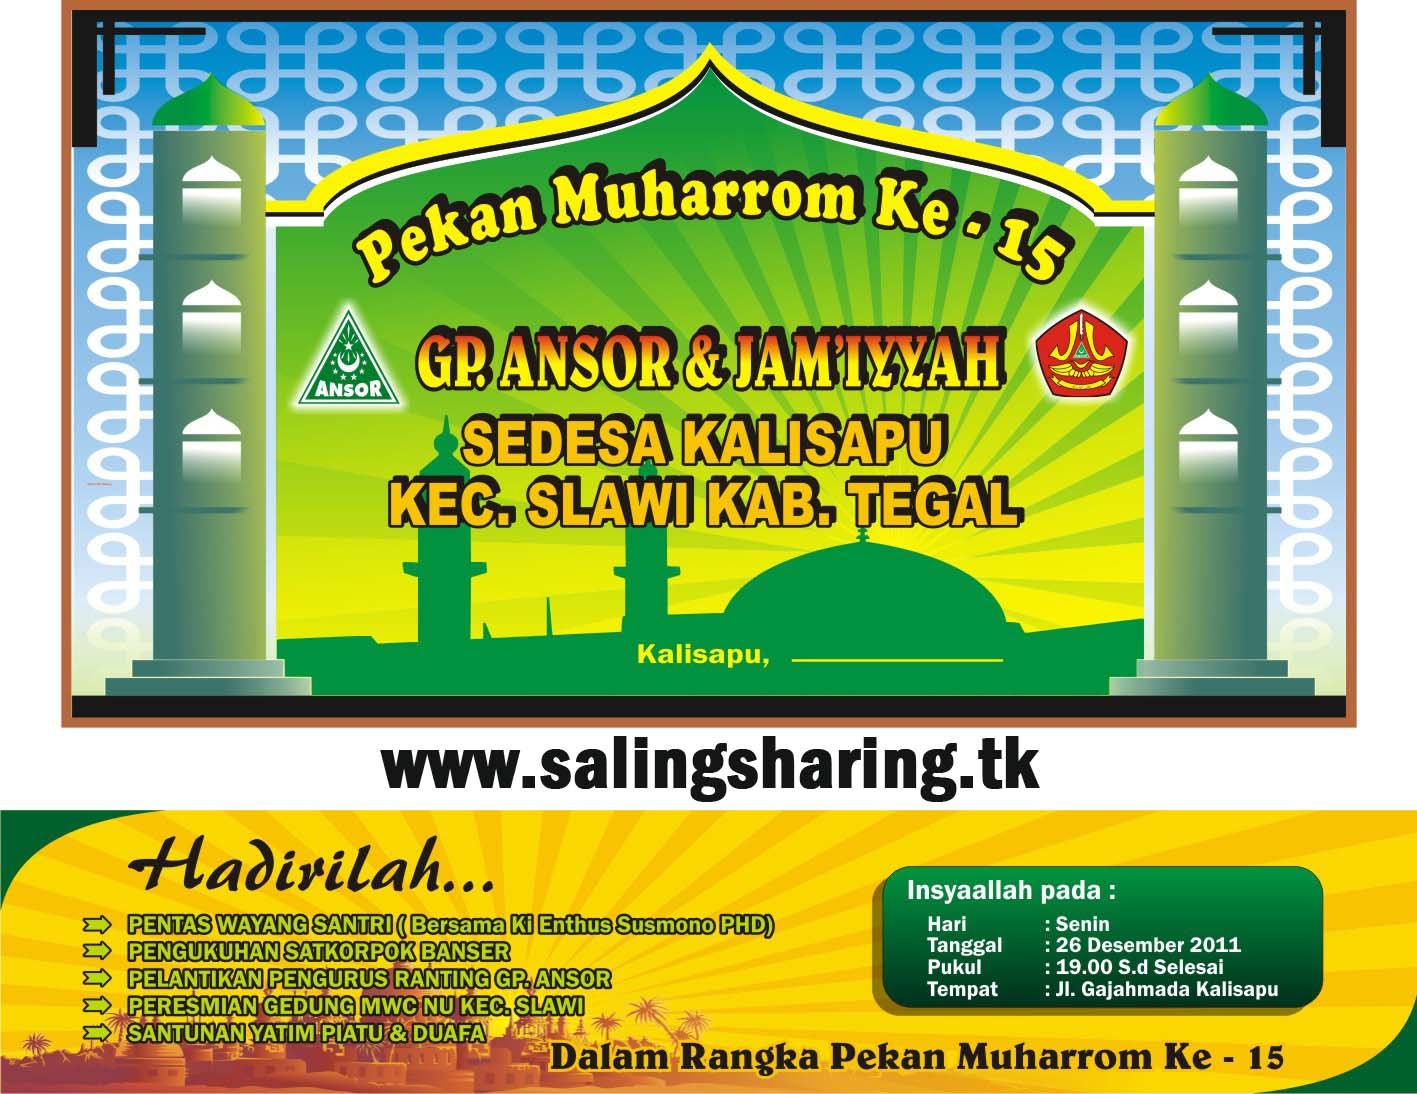 contoh backdrop banner background islami format Corel Draw